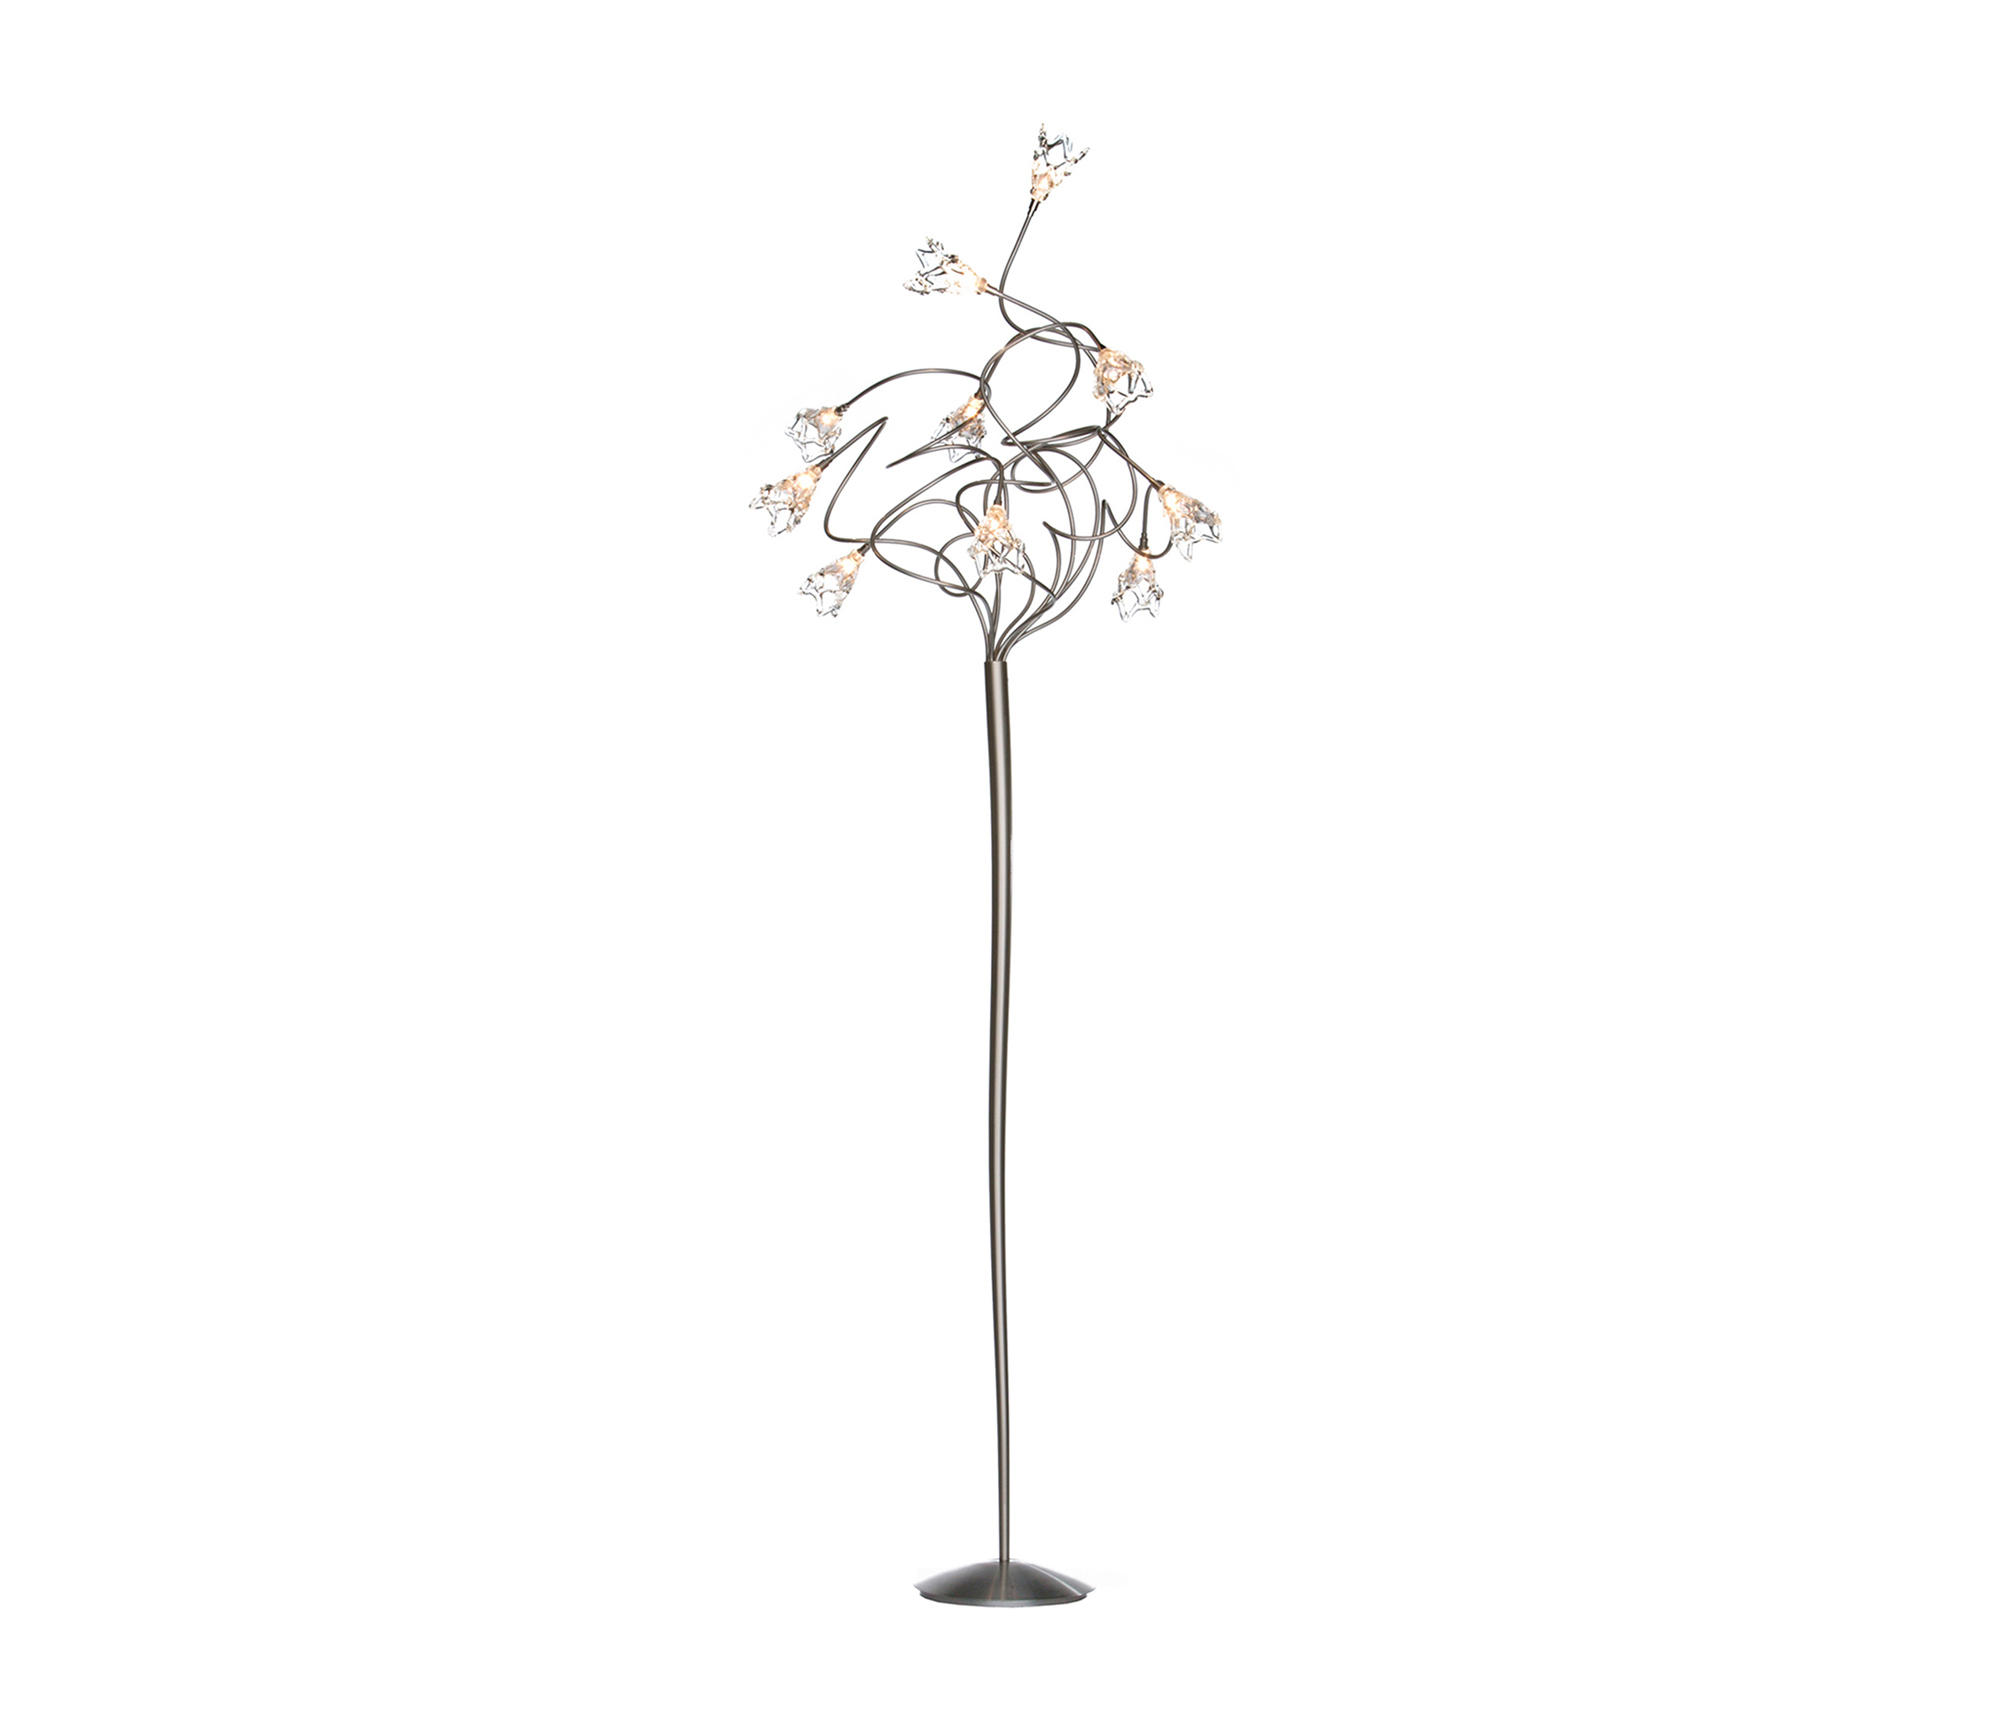 Flag floor lamp 10 general lighting from harco loor architonic flag floor lamp 10 by harco loor general lighting arubaitofo Image collections